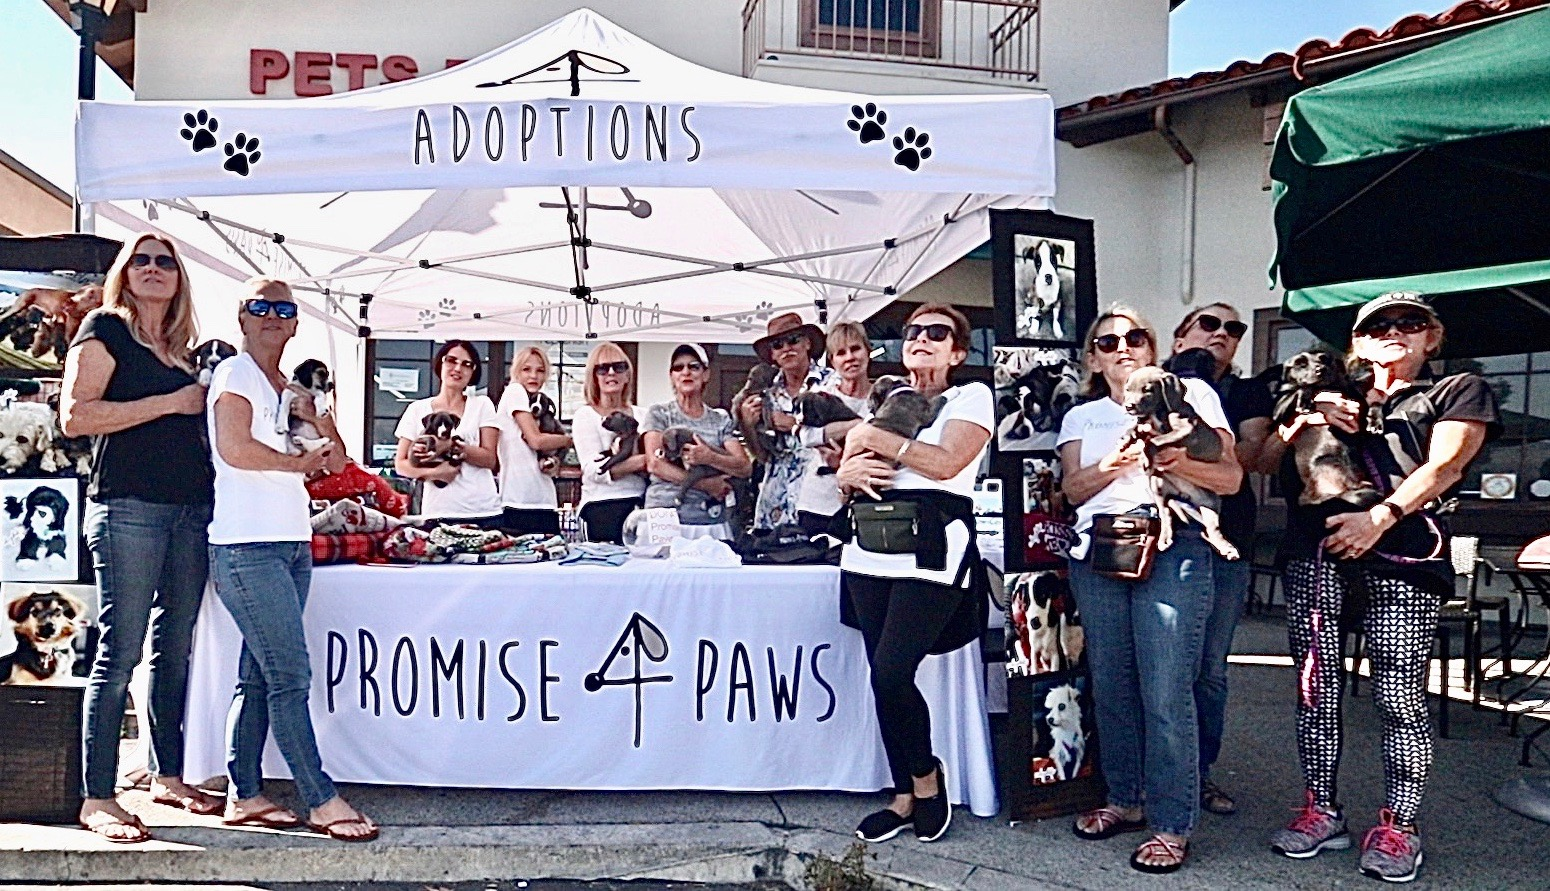 Adoption Event – Saturday August 22nd 10am -1pm   PETS PLUS,                                               32022 Camino Capistrano #A San Juan Capistrano, CA 92675 (949) 248-3400